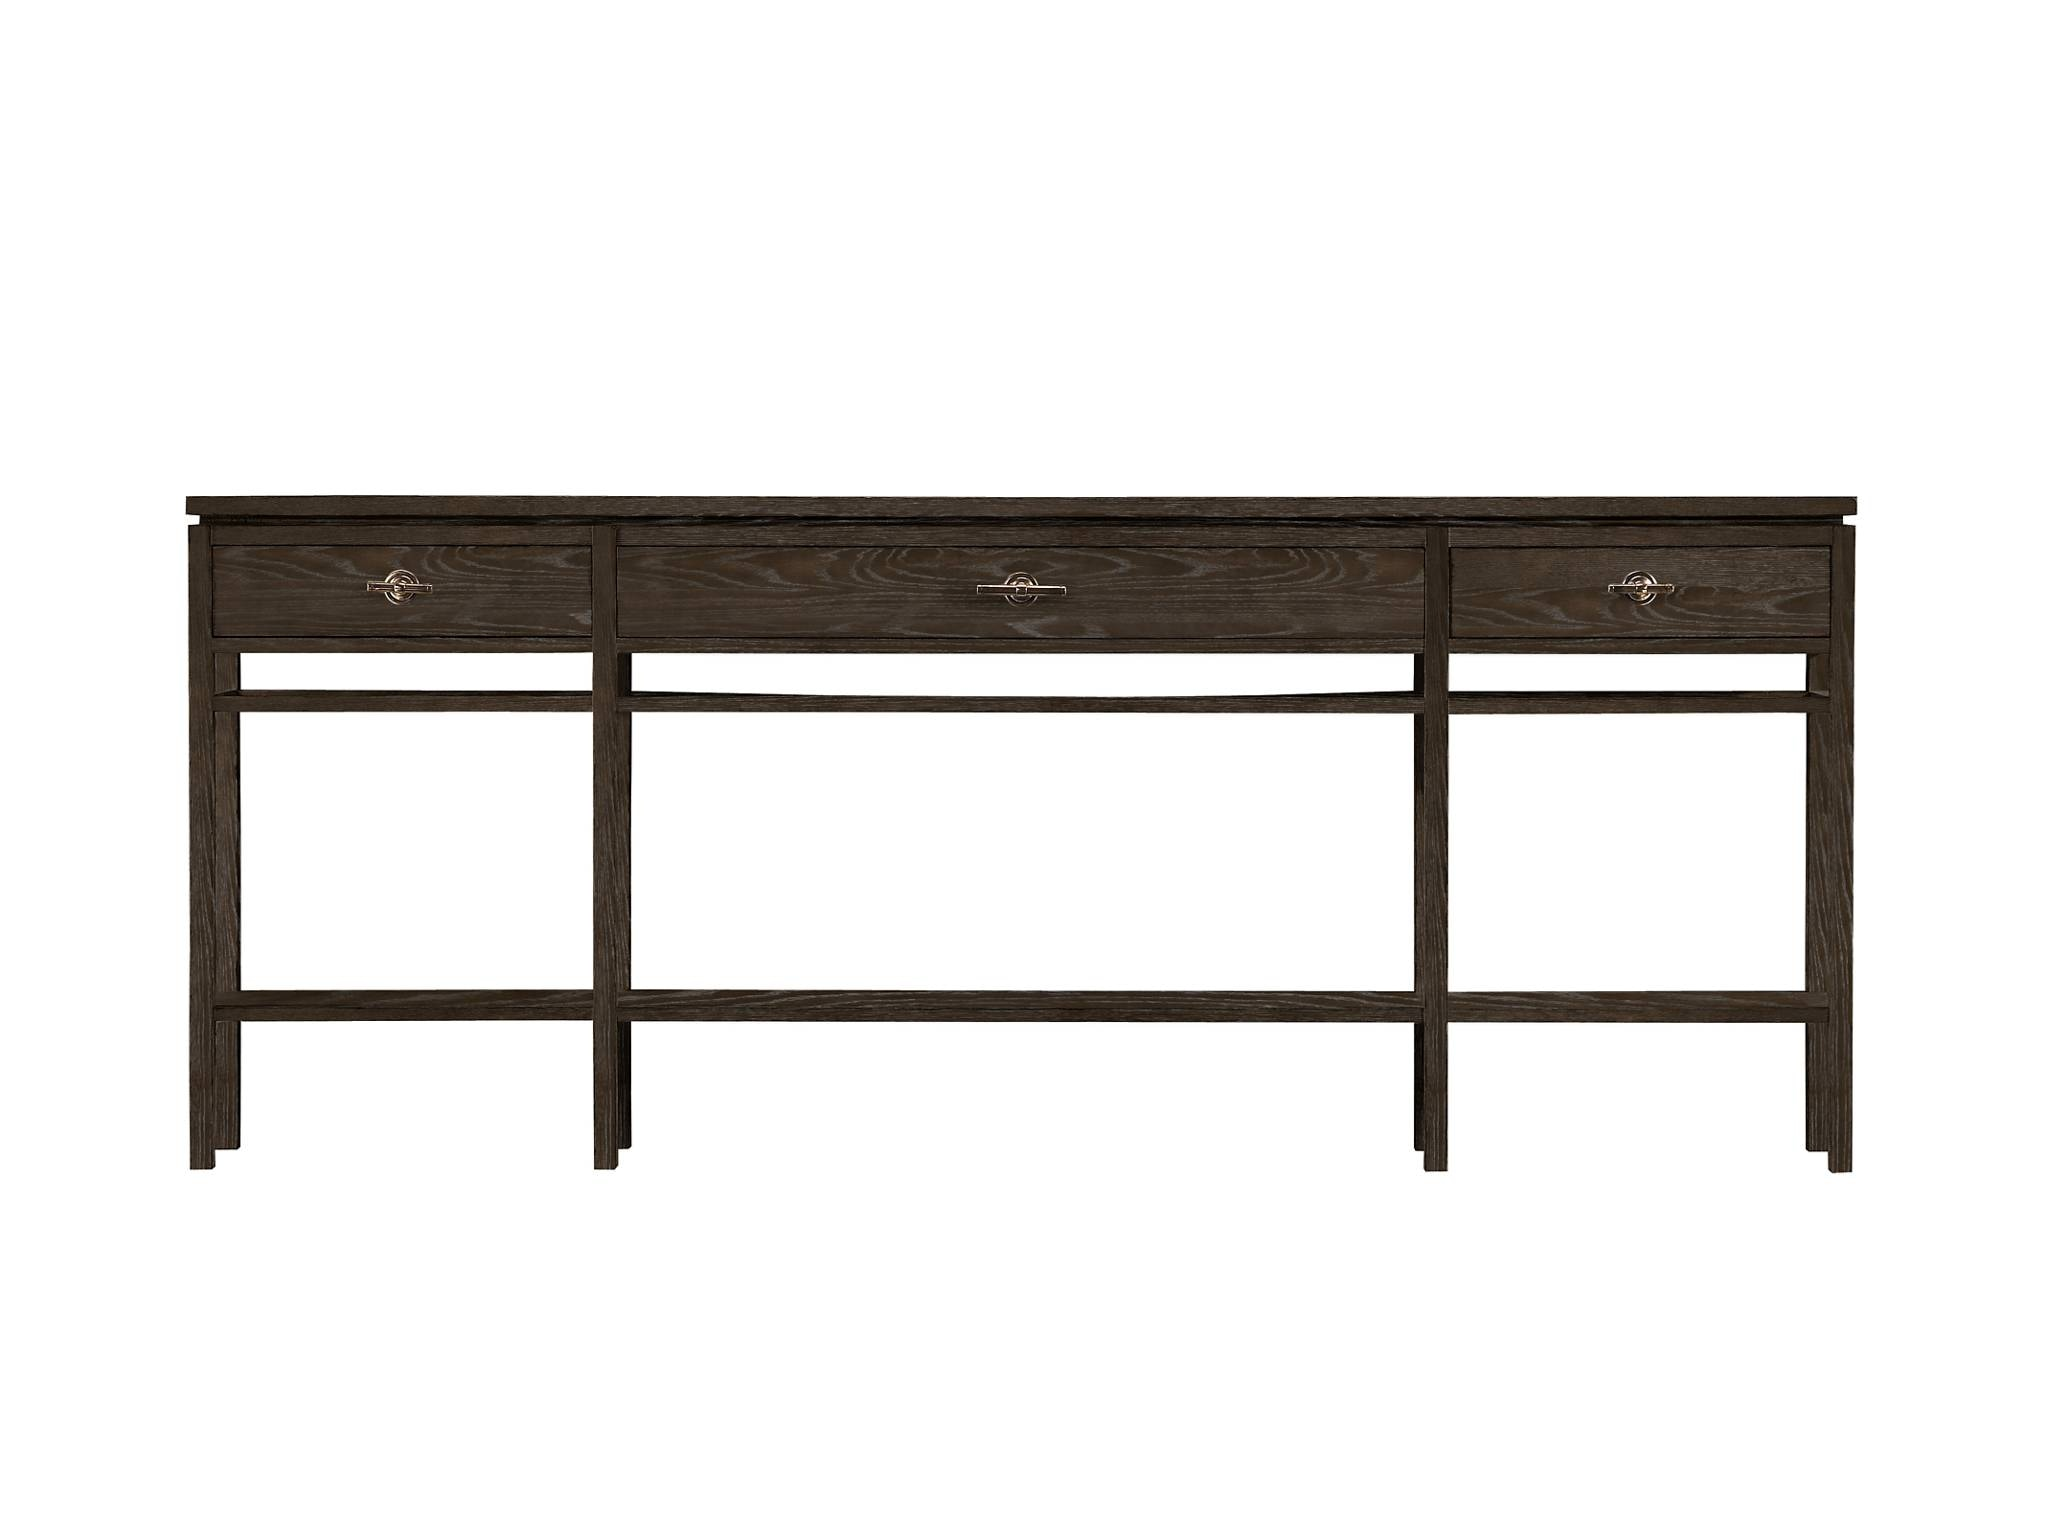 Coastal Living Palisades Sofa Table 062 15 05